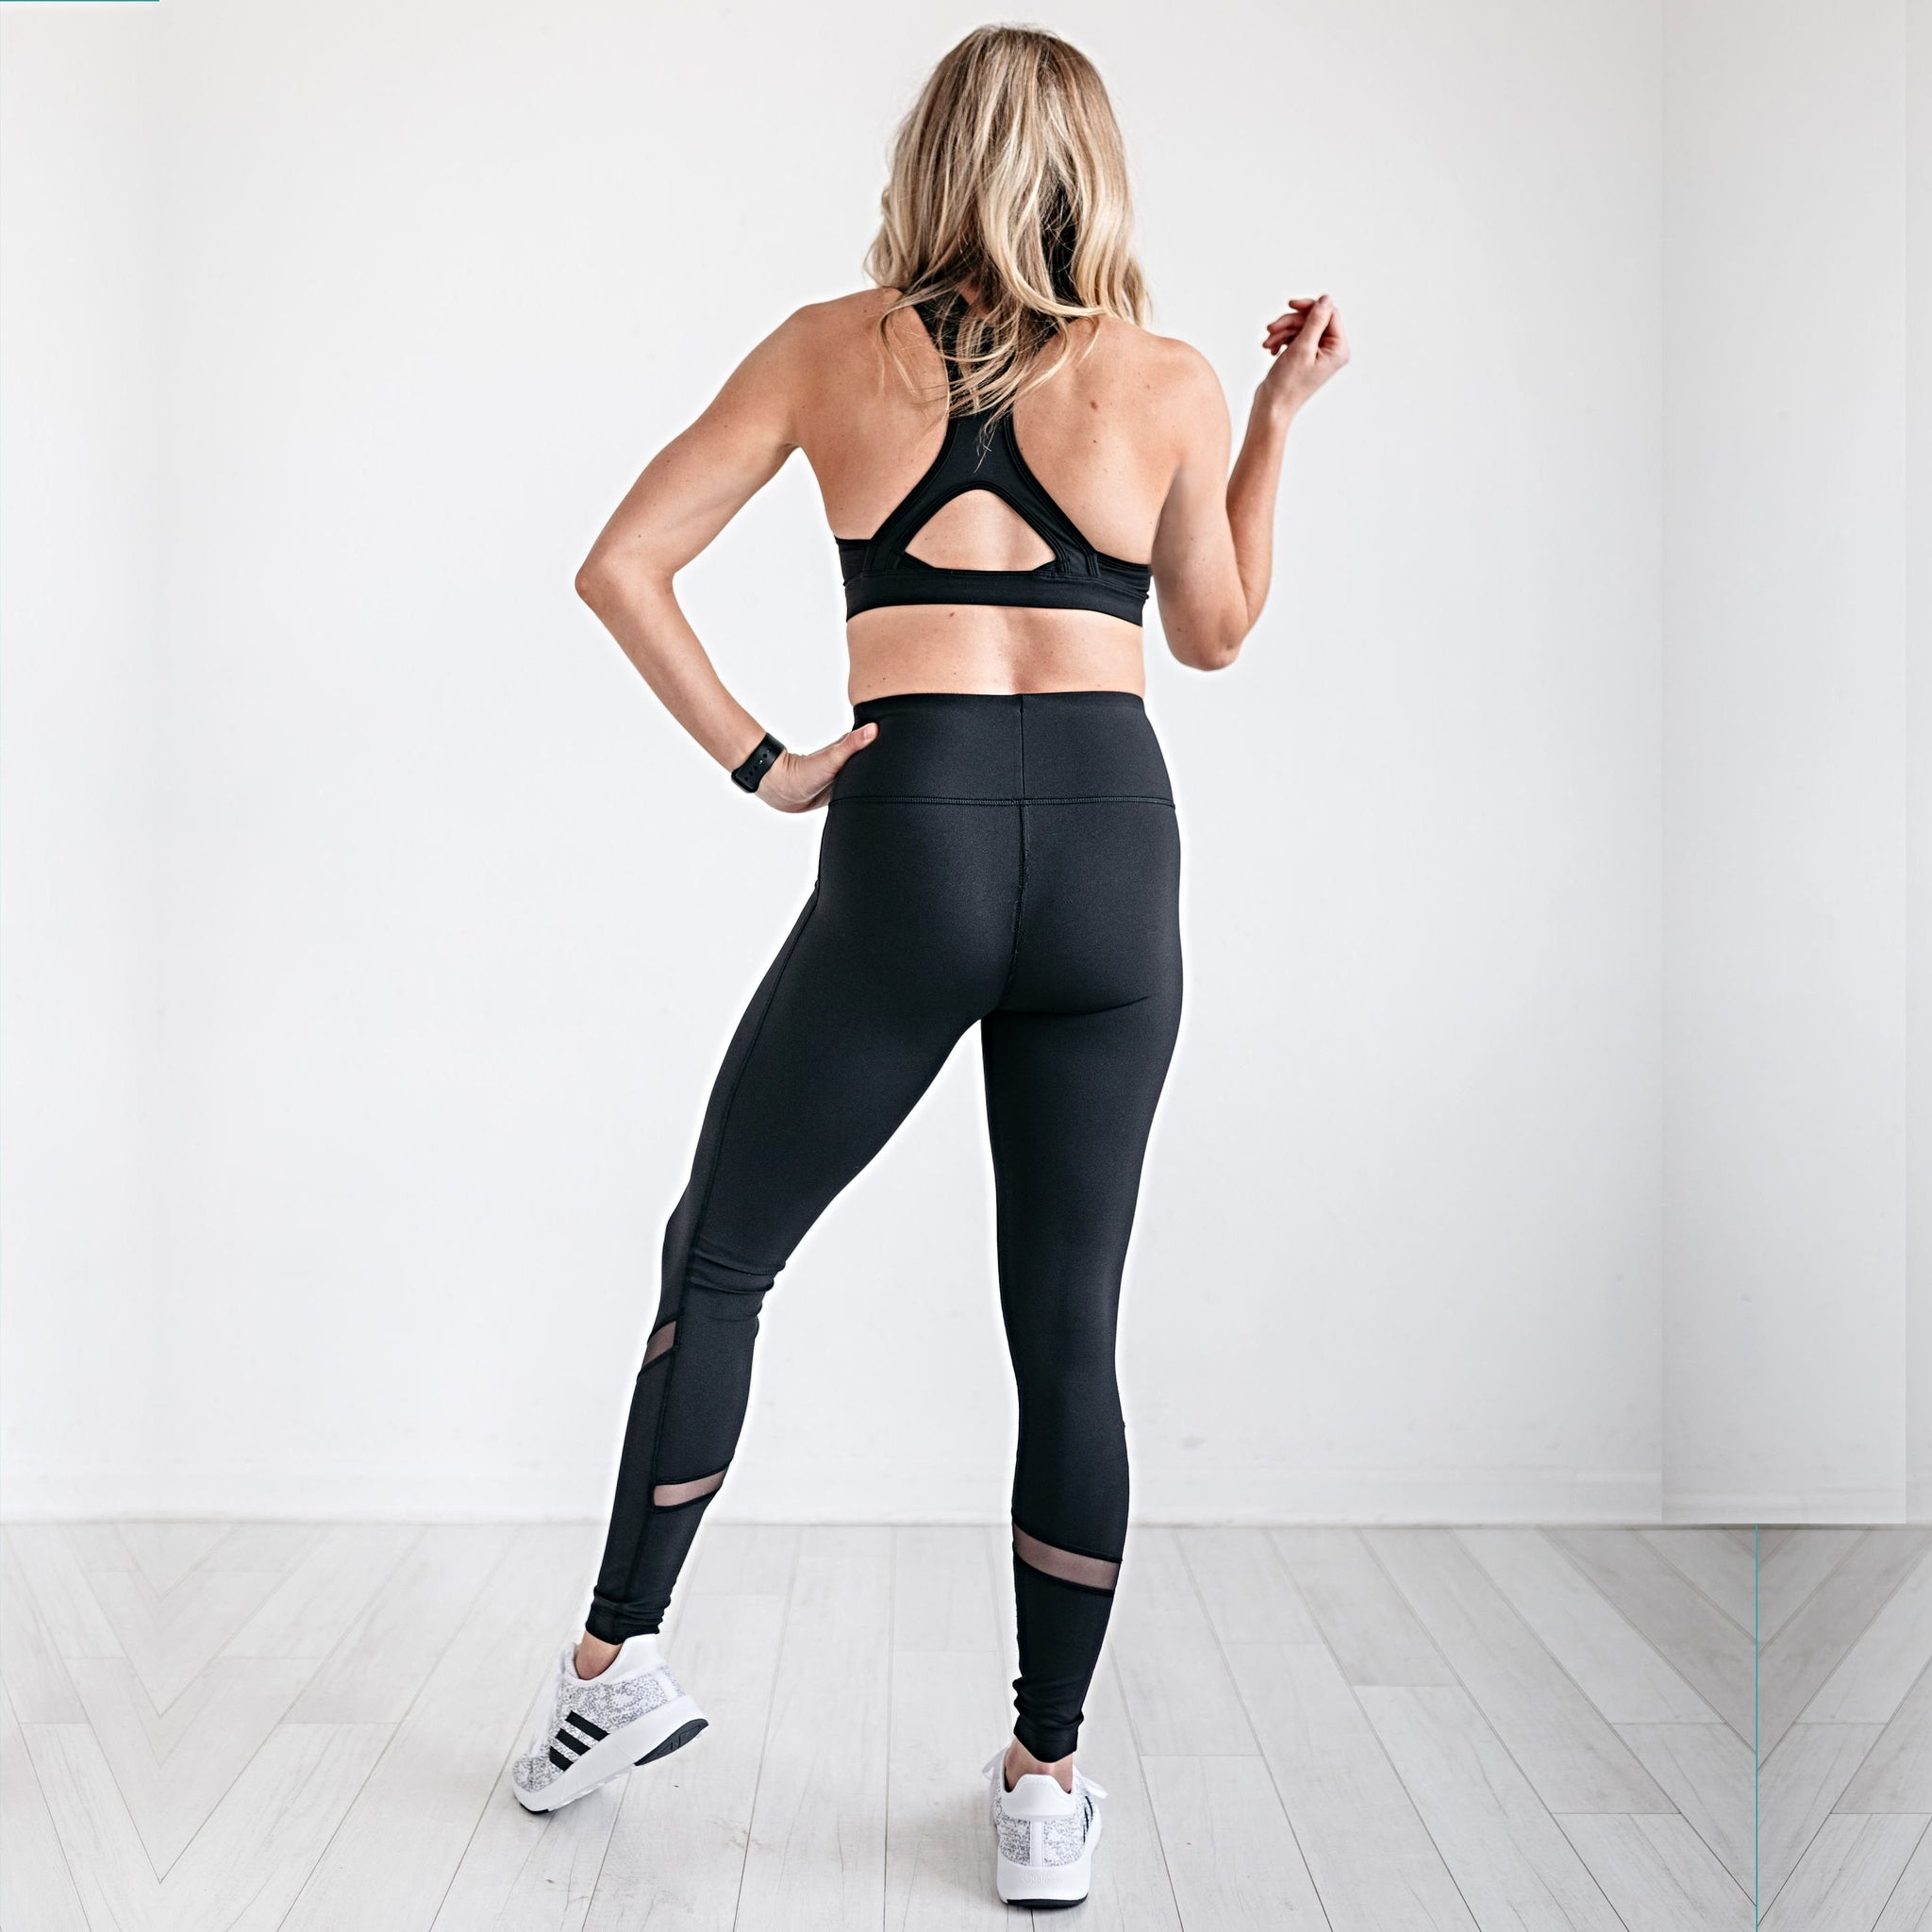 Shape It Up! Leggings Black Legging Sew Sew You